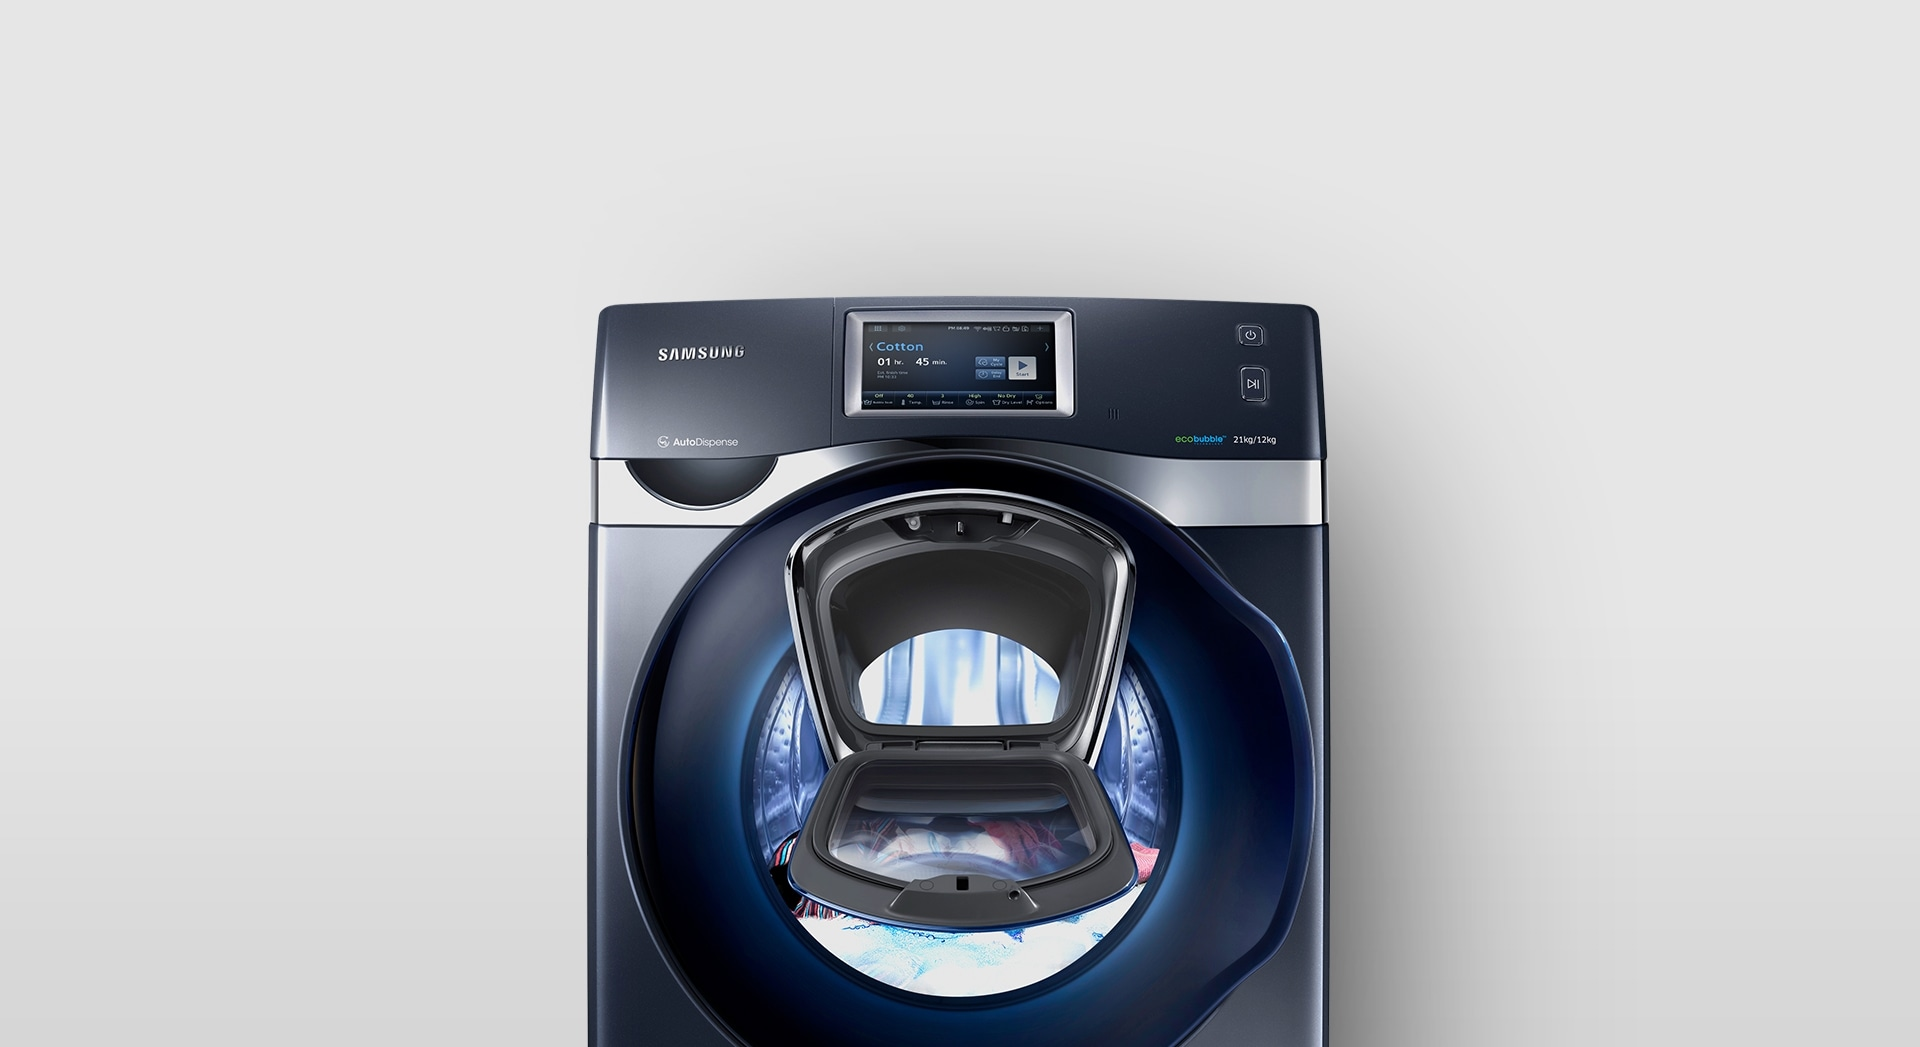 An image showing the WD9500K Add Wash with its Add Window open.